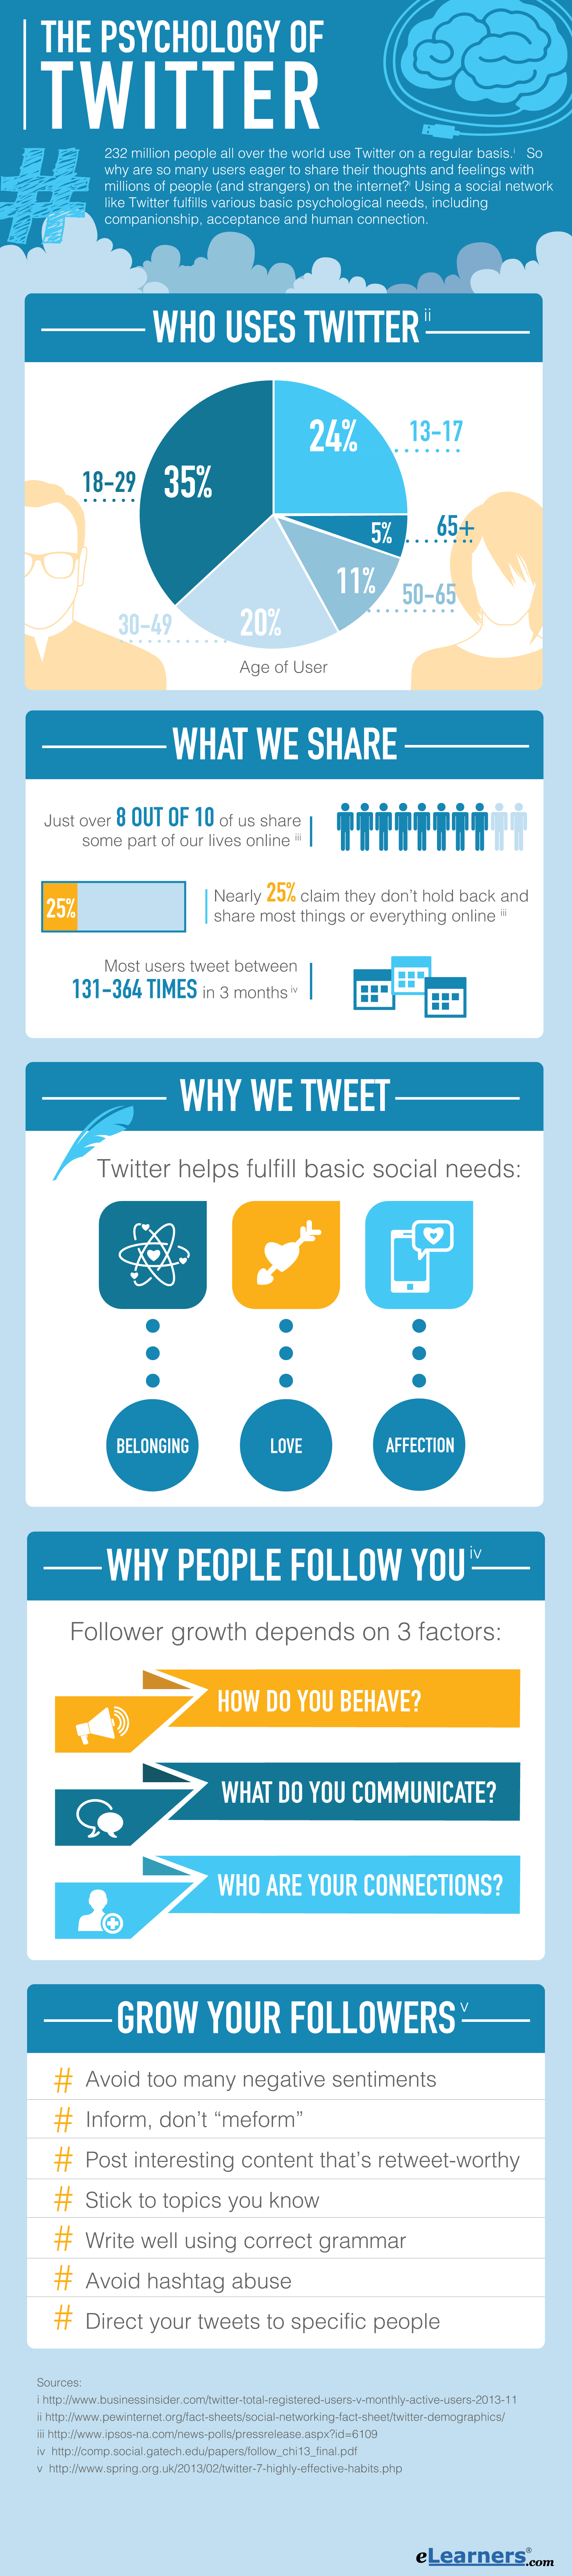 The Psychology of Twitter #infographic